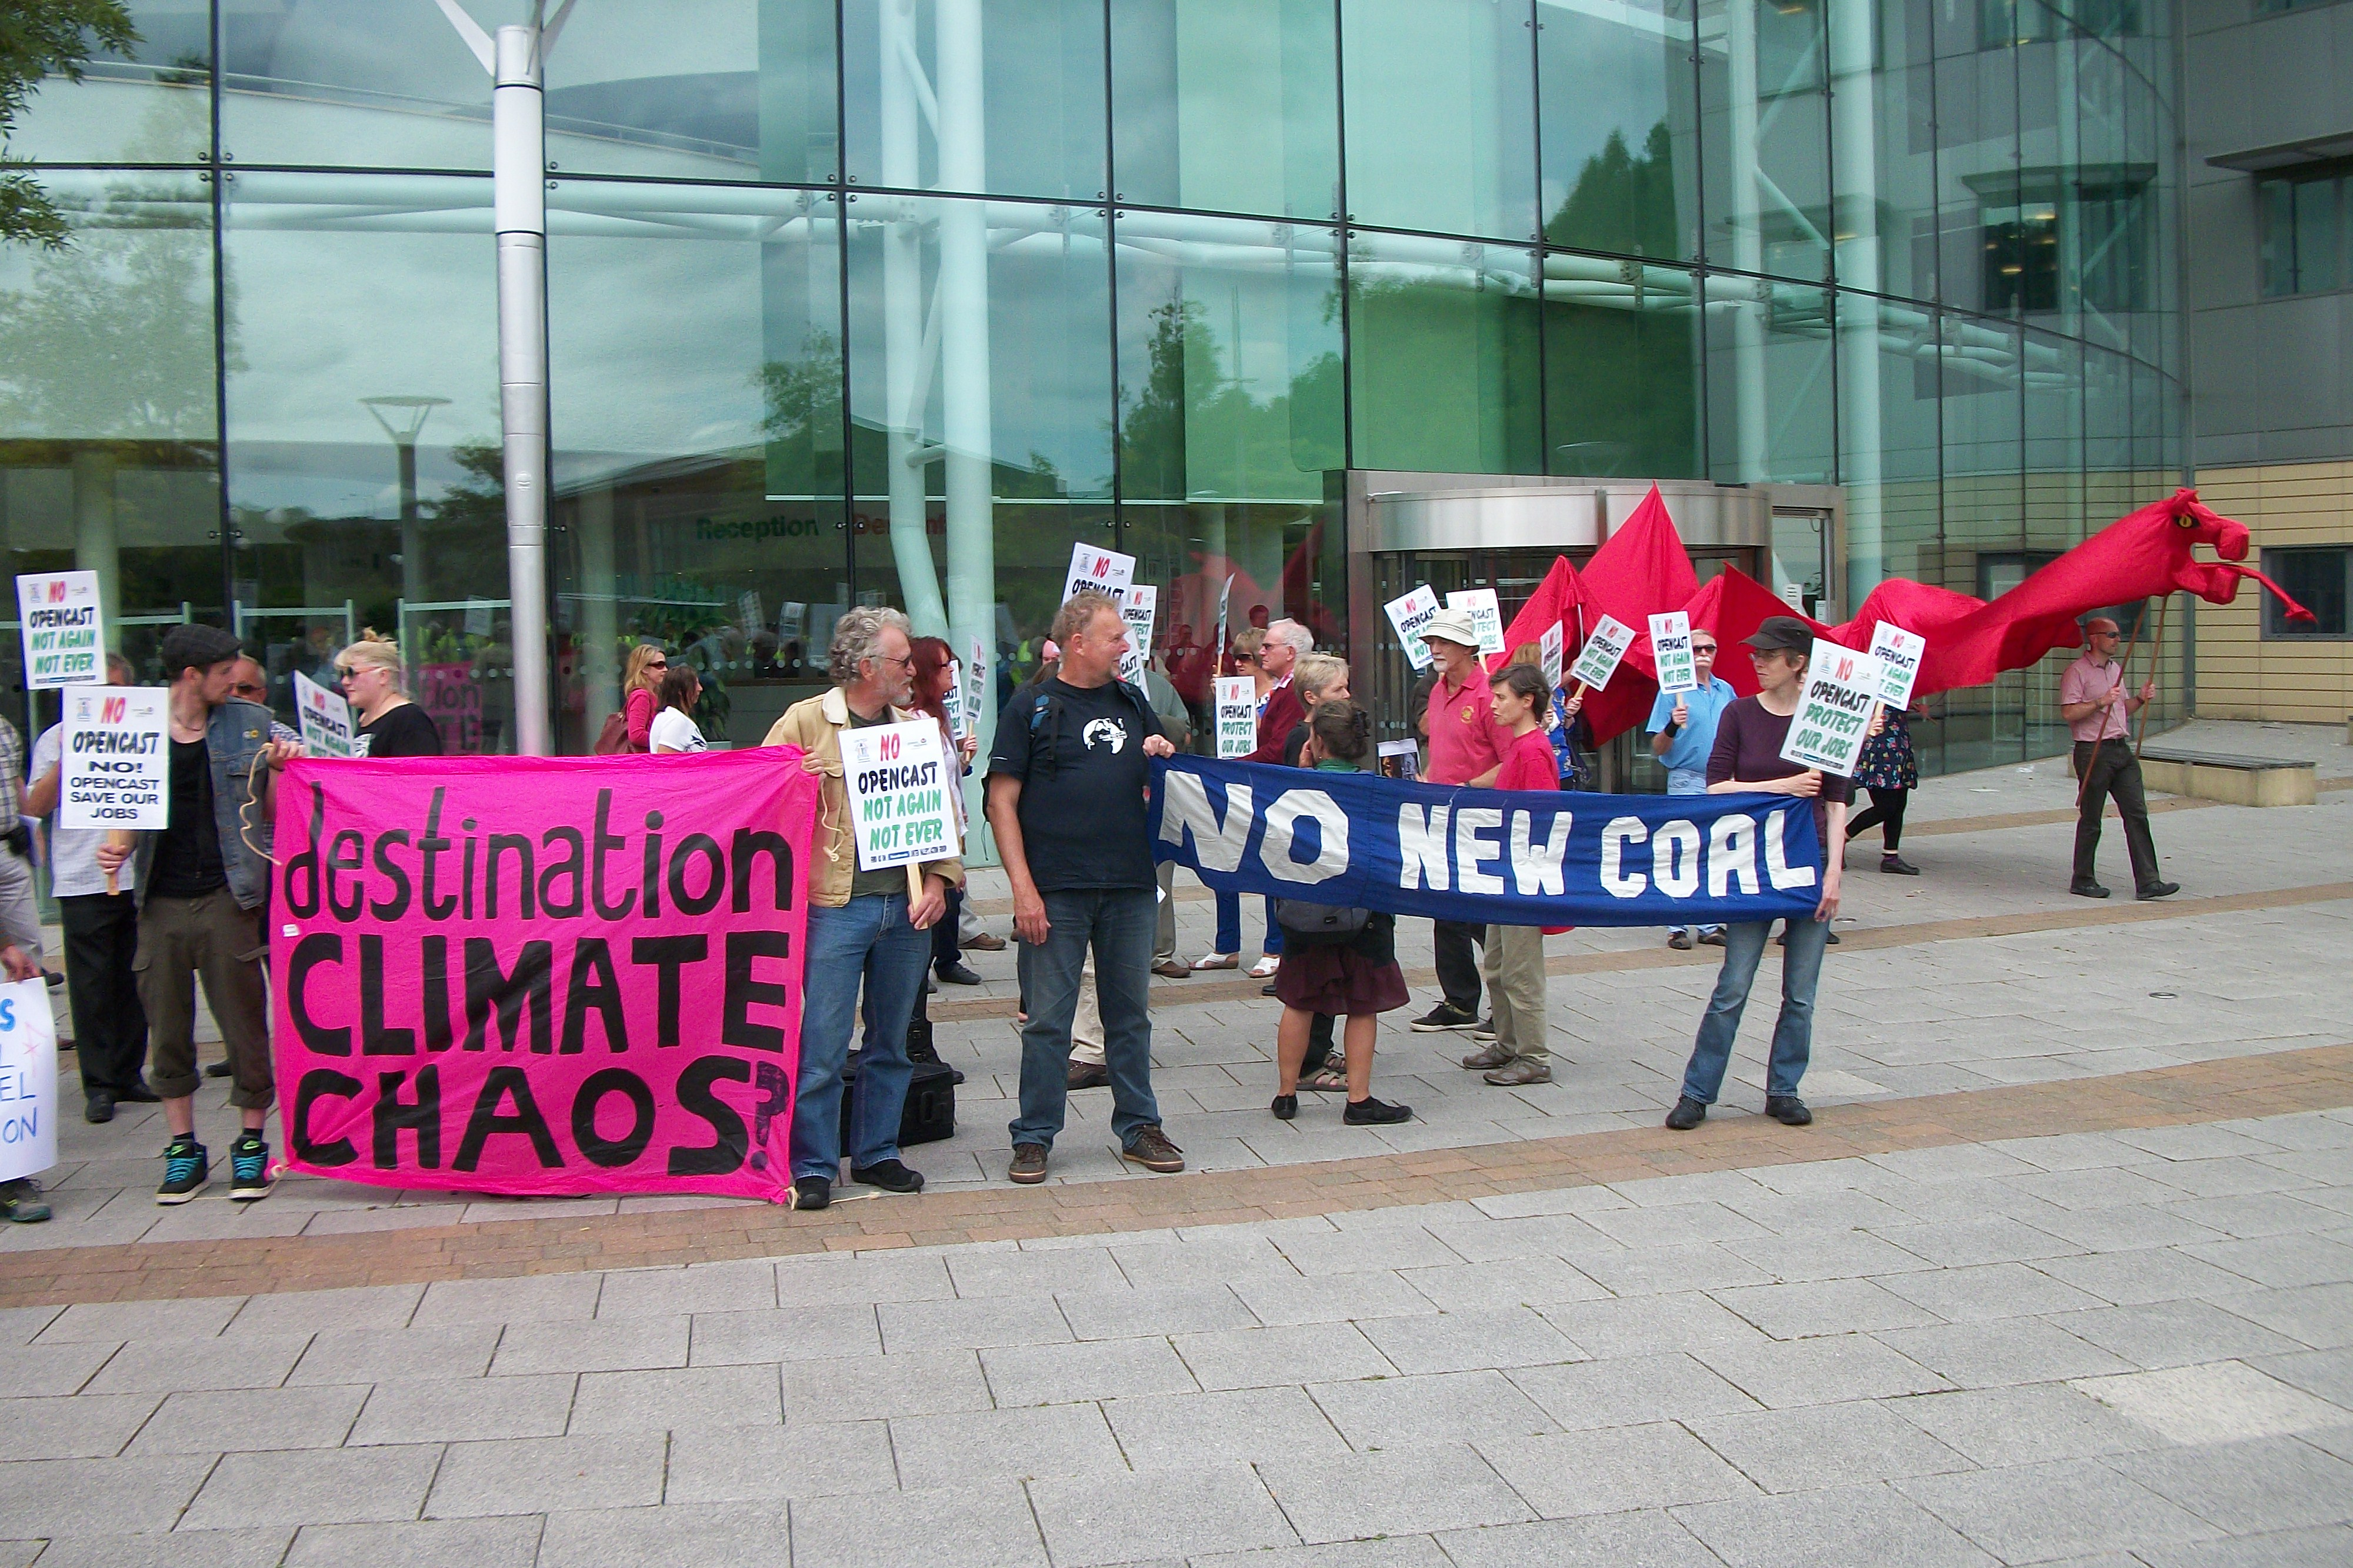 Setback for opencast in Wales